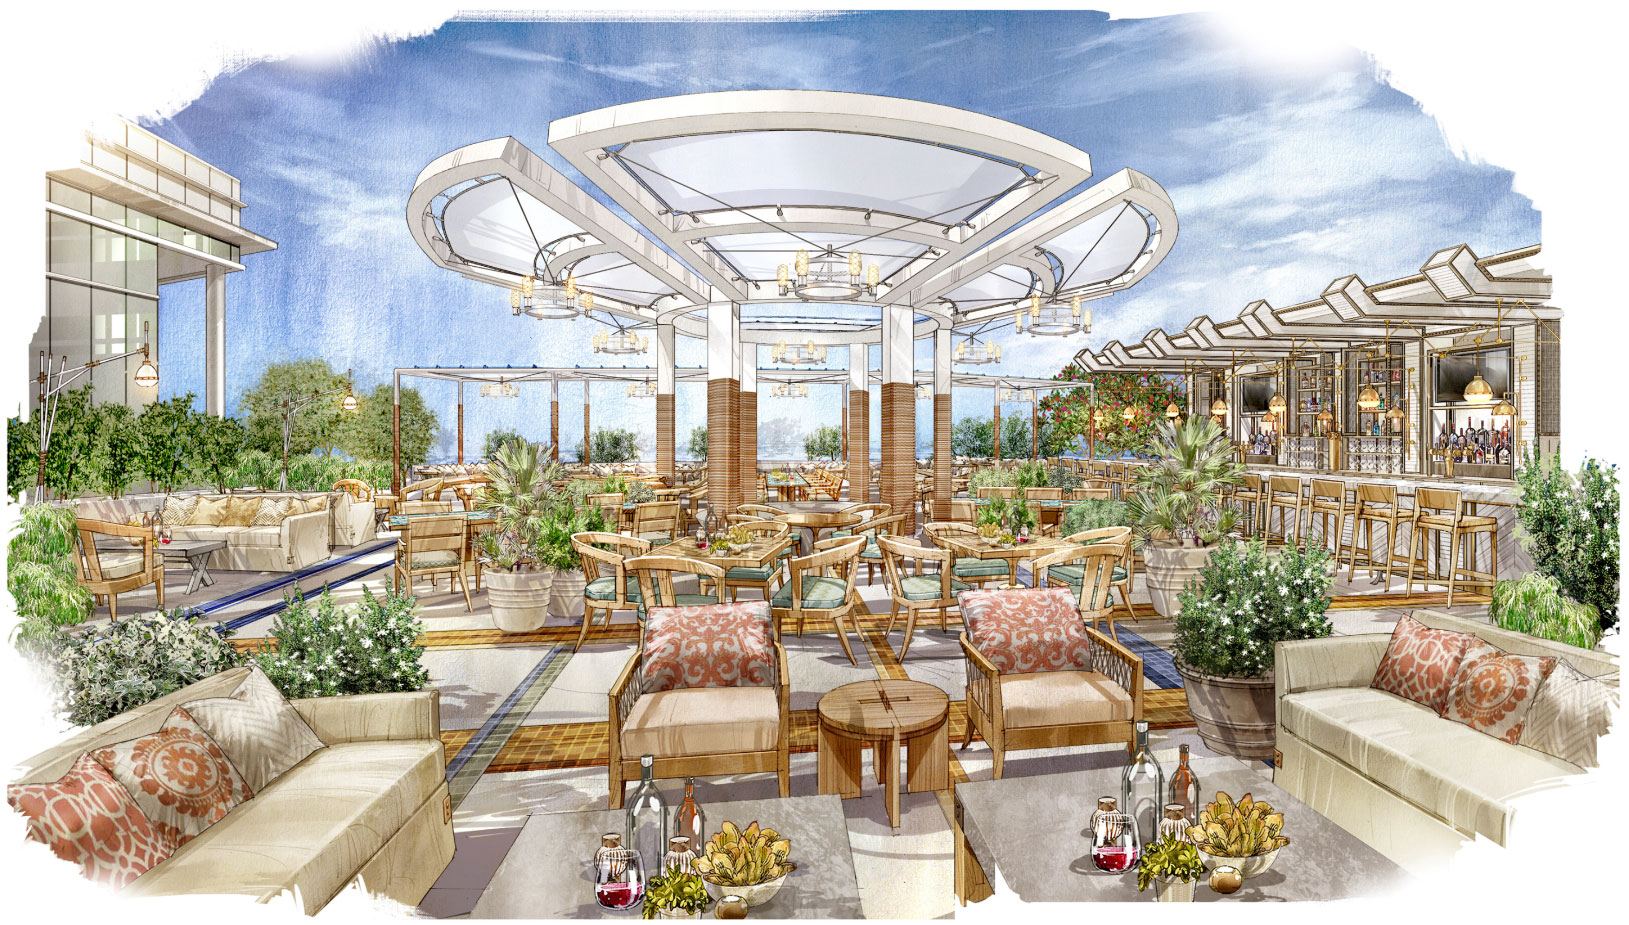 A rendering of the outdoor area at Herringbone, courtesy of Aria